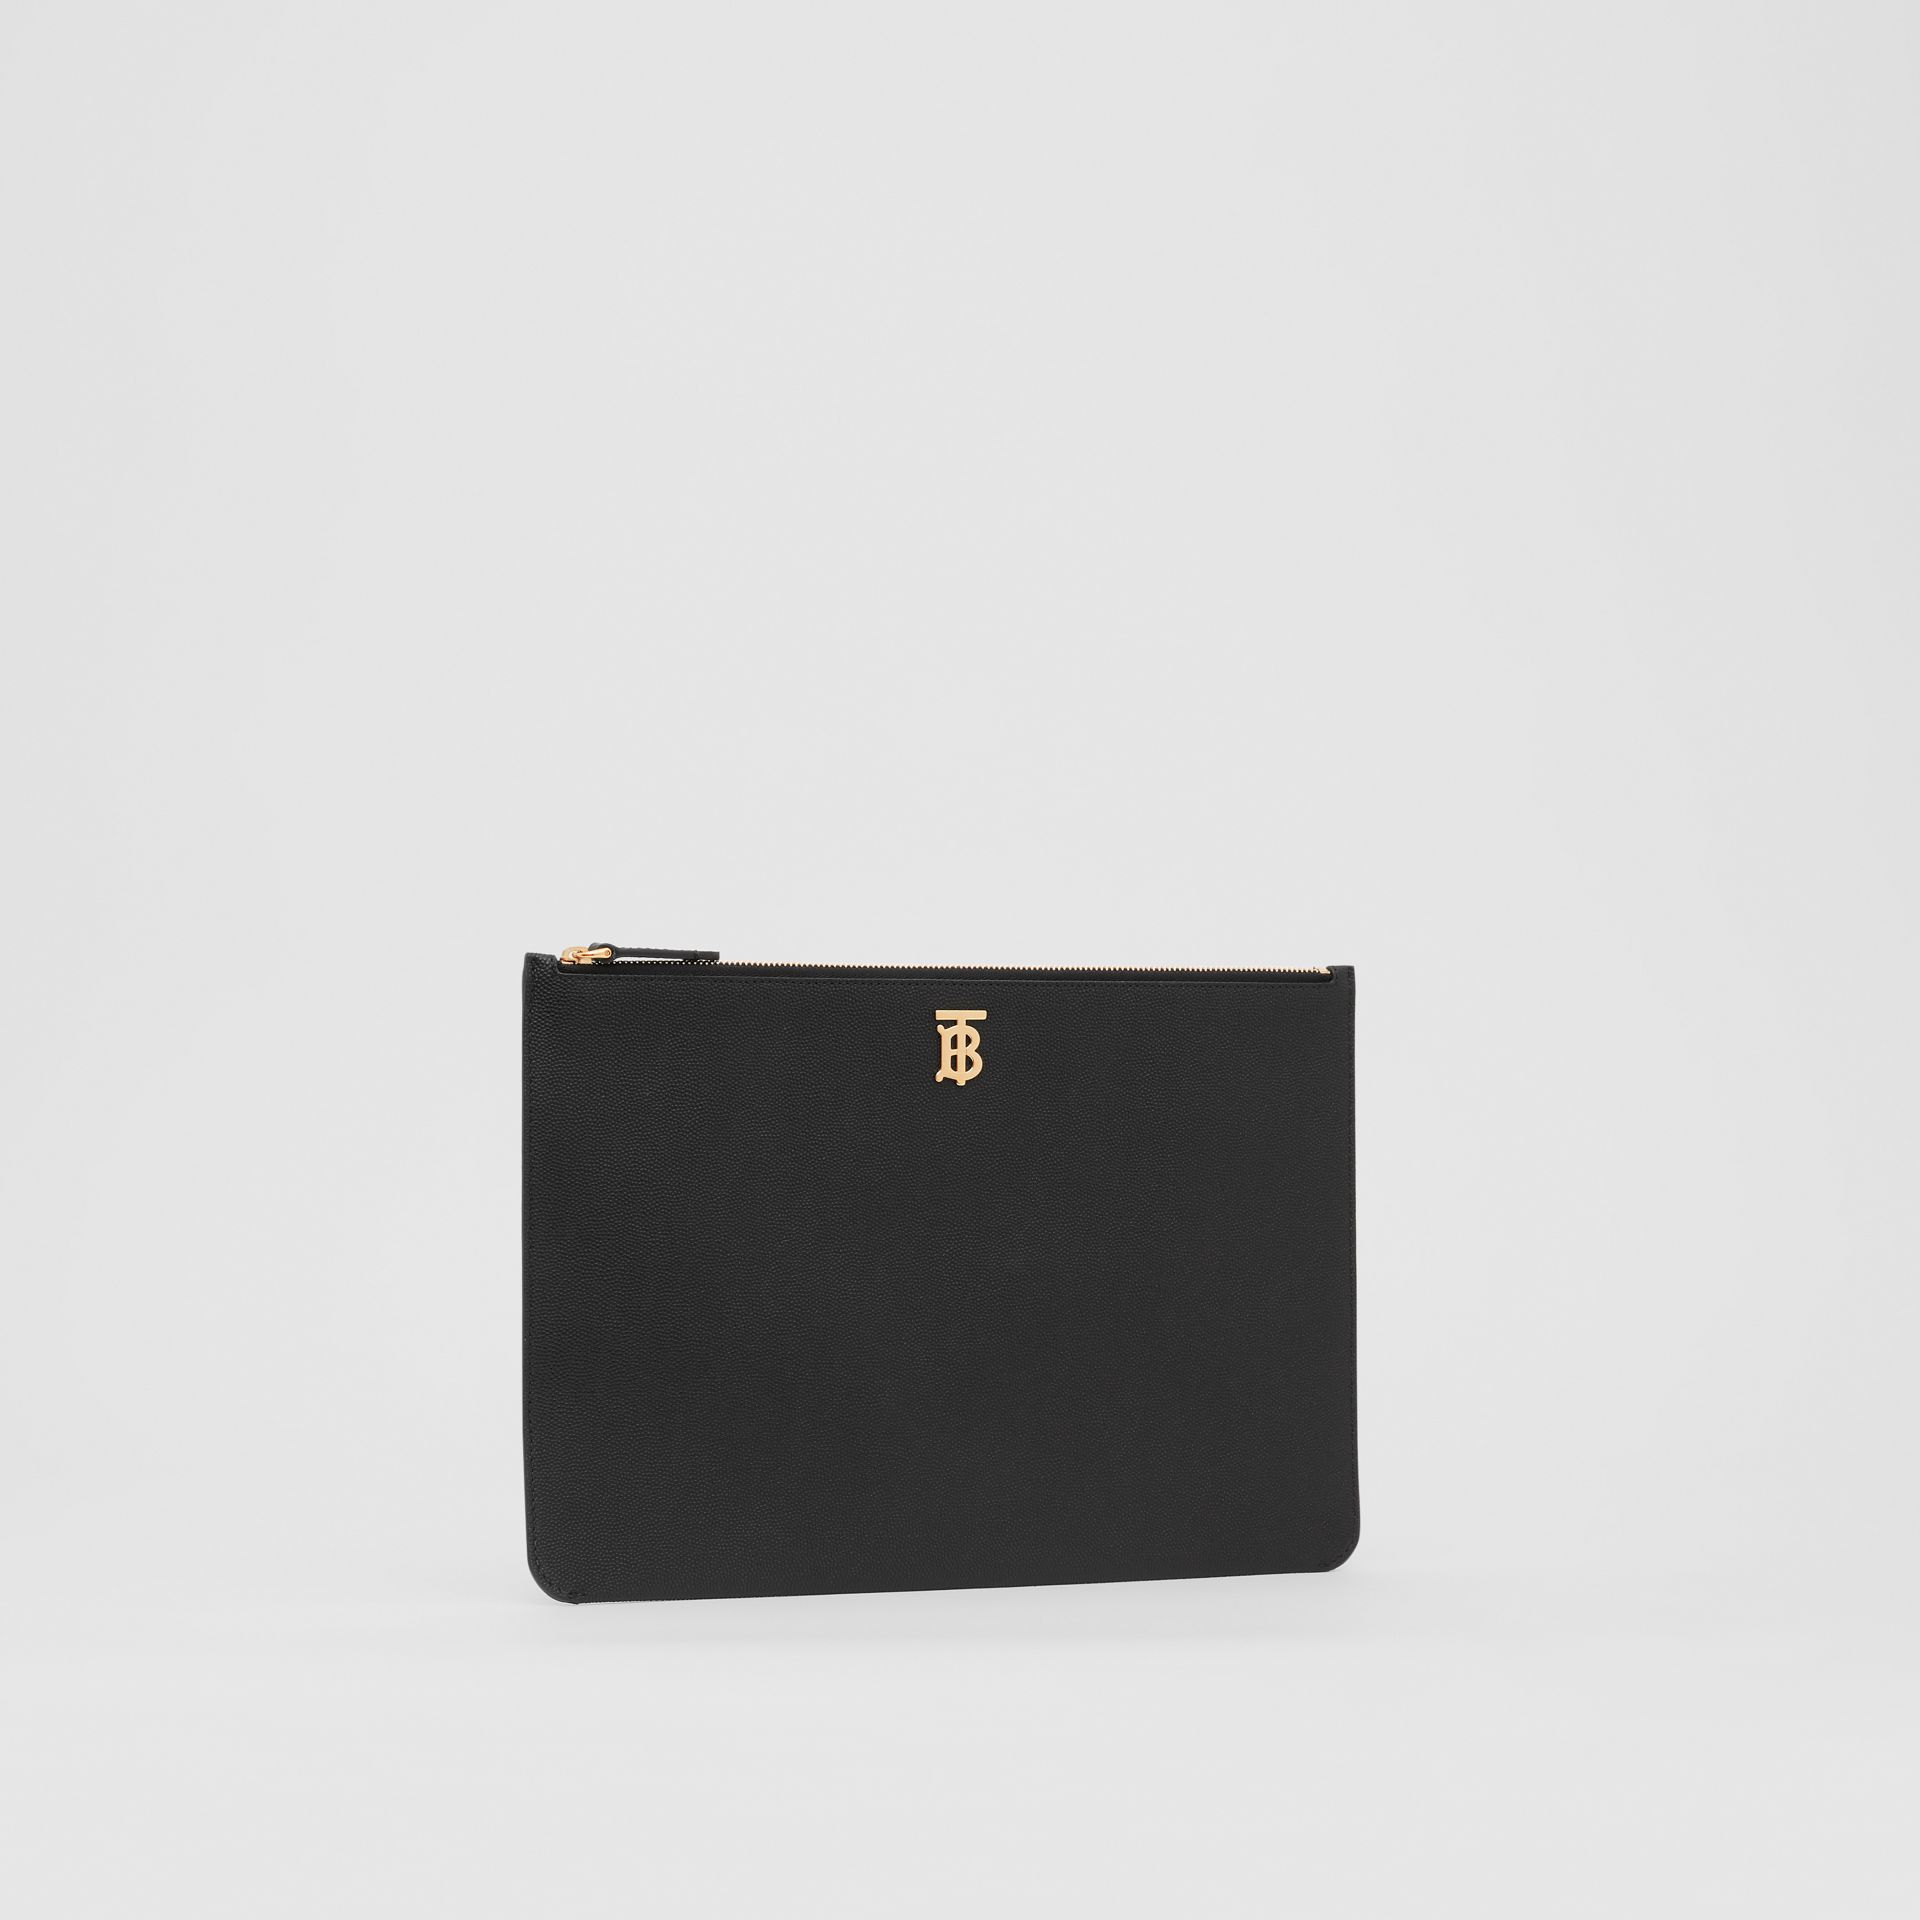 Monogram Motif Grainy Leather Pouch in Black - Women | Burberry United States - gallery image 5